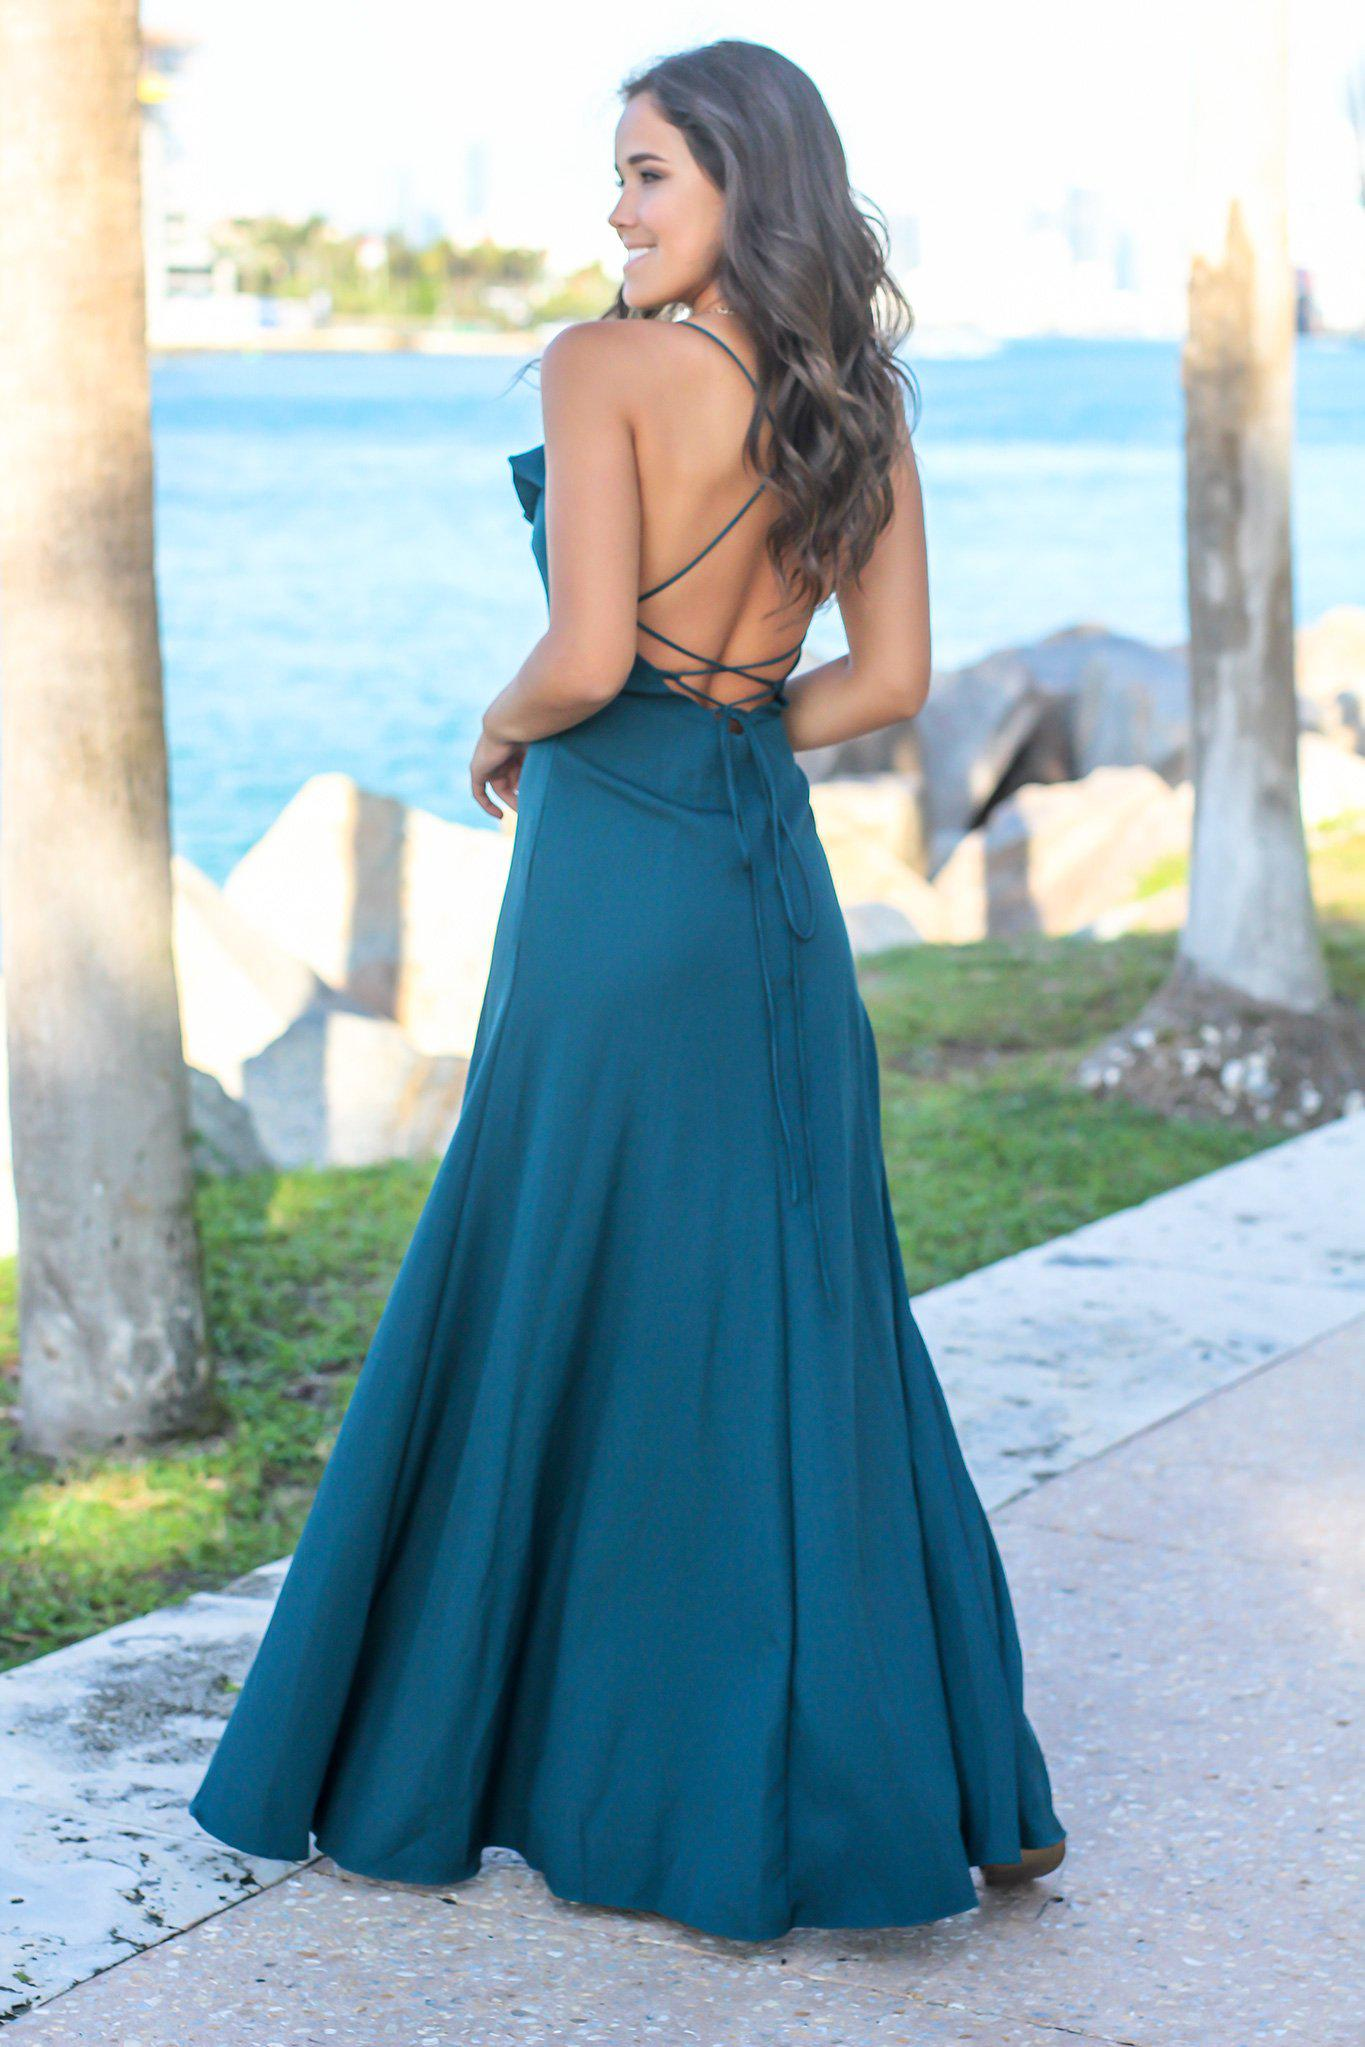 Teal Ruffled Maxi Dress with Lace Up Back